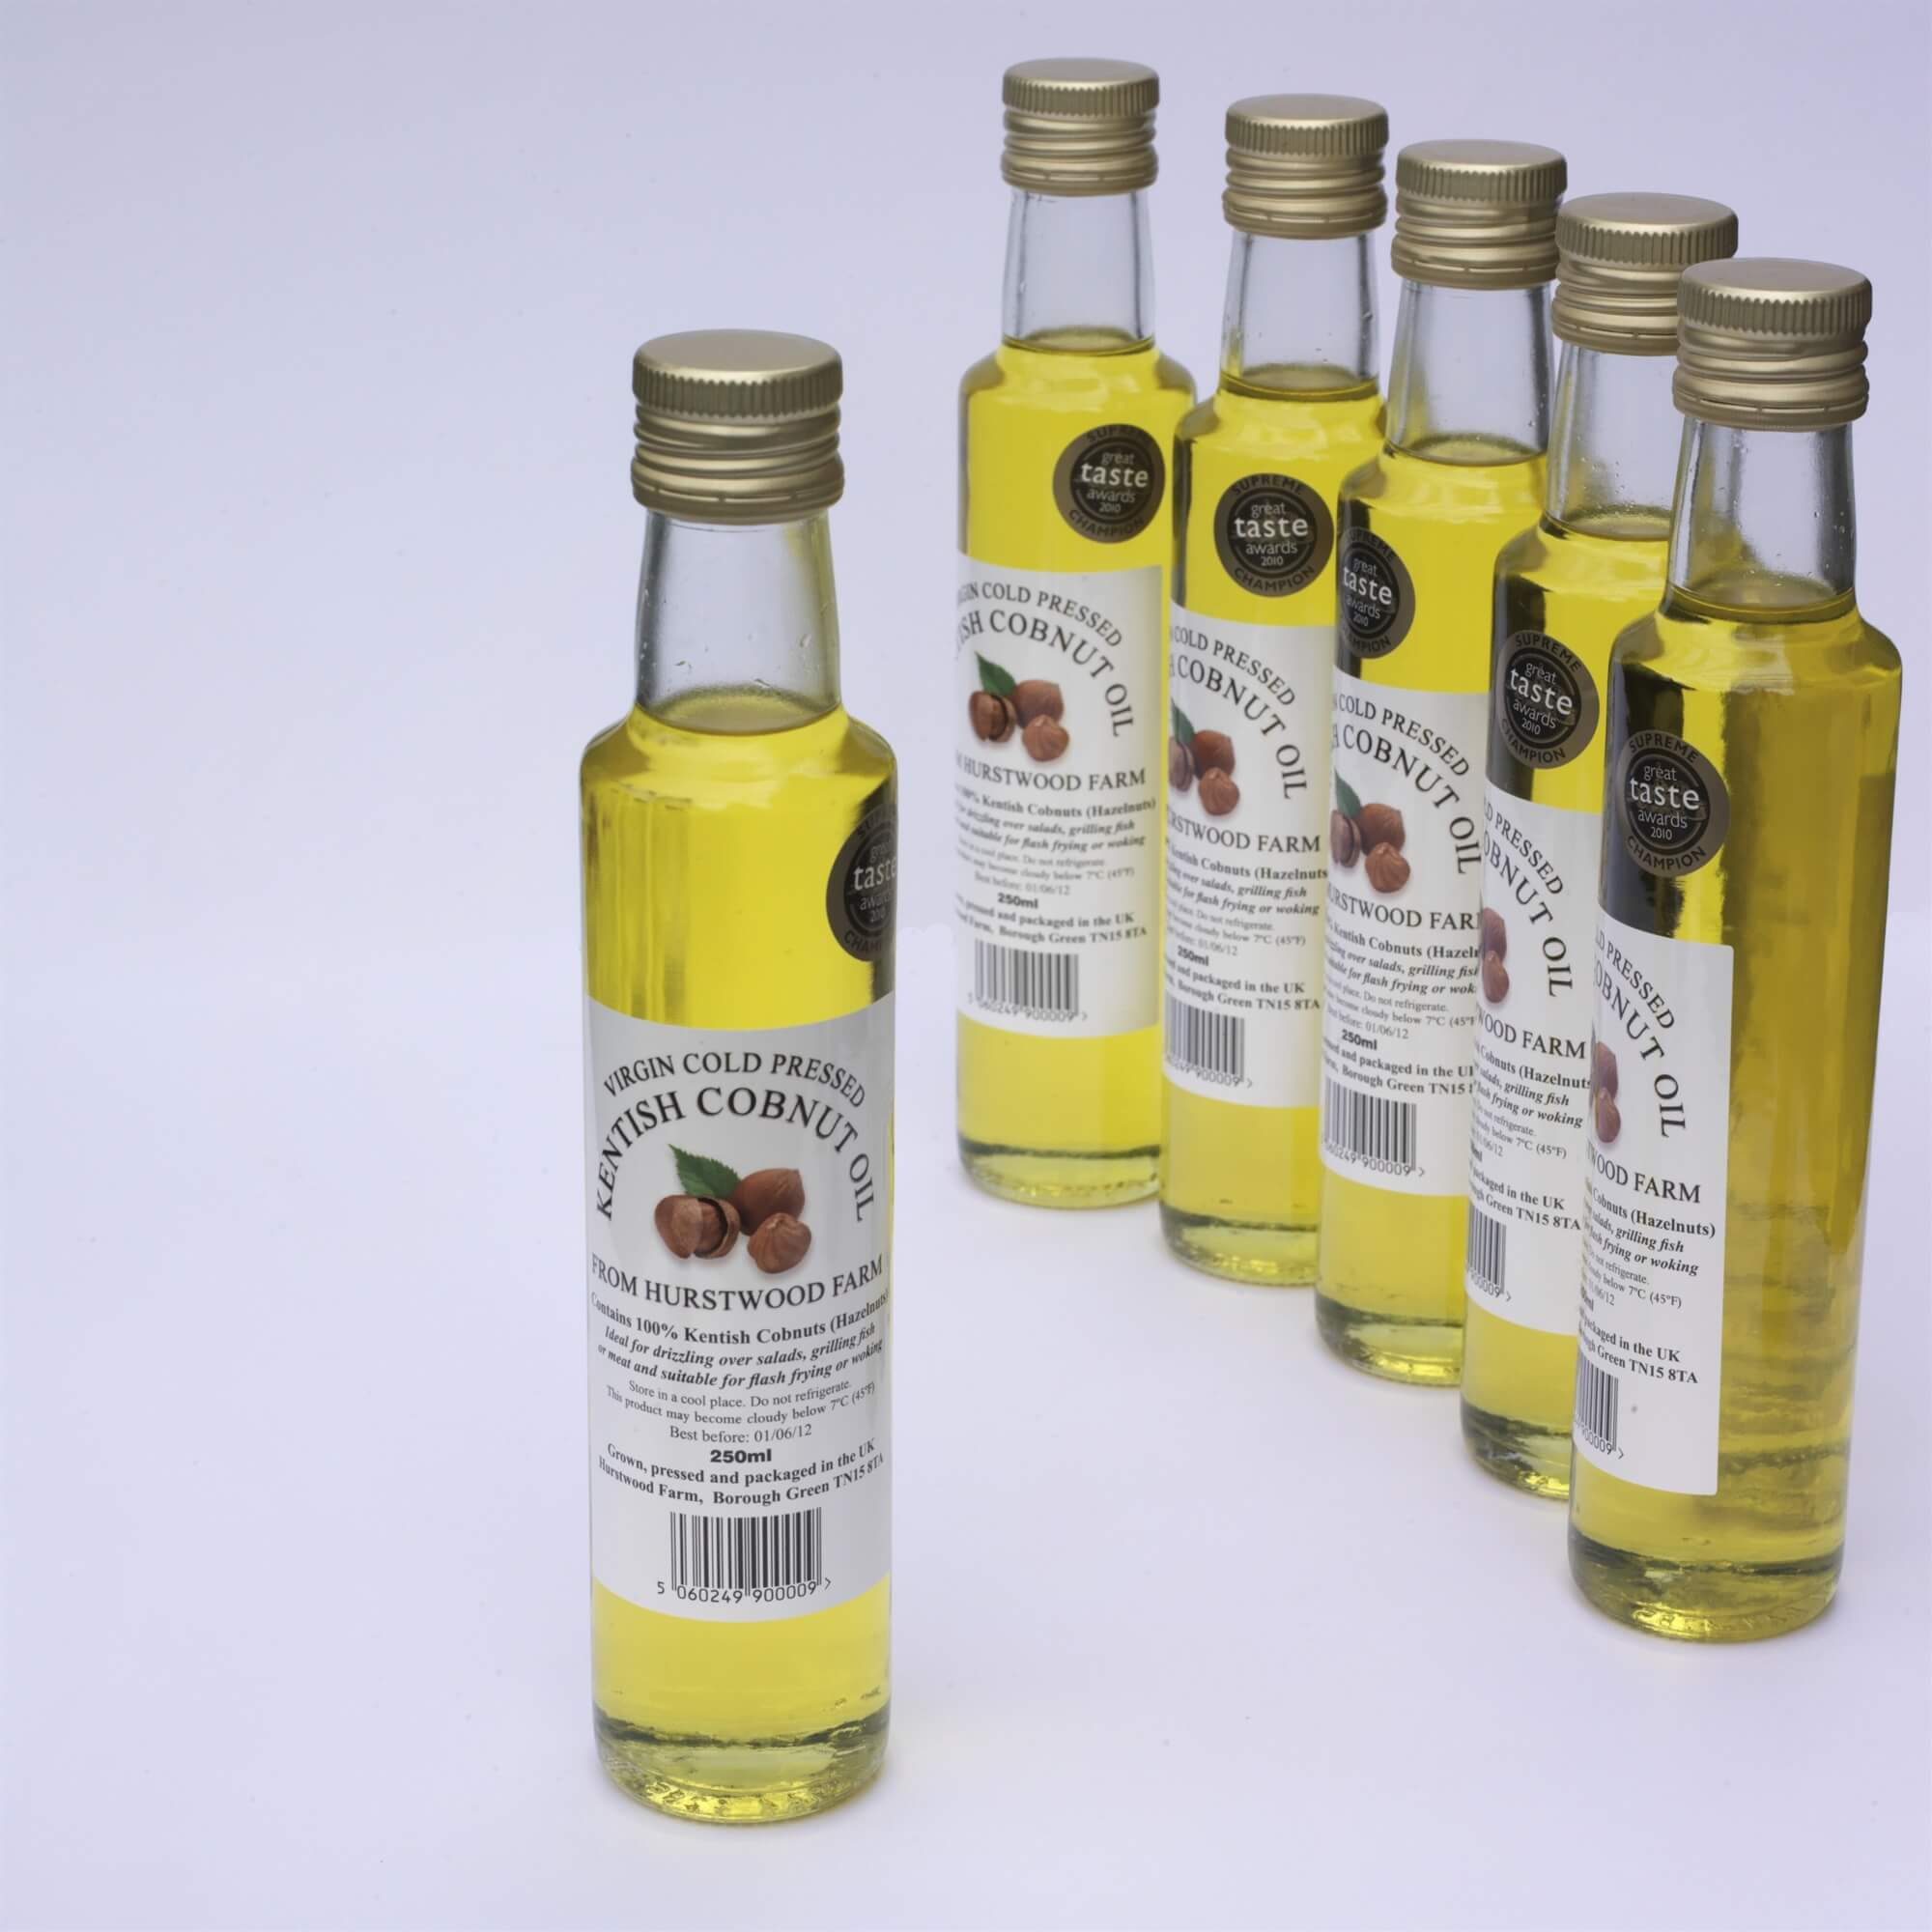 Virgin Cold Pressed Kentish Cobnut Oil - Our Kentish Cobnut Oil has featured on ITV Ade In Britain, BBC The Hairy Bikers, and ITV The Hungry Sailors.